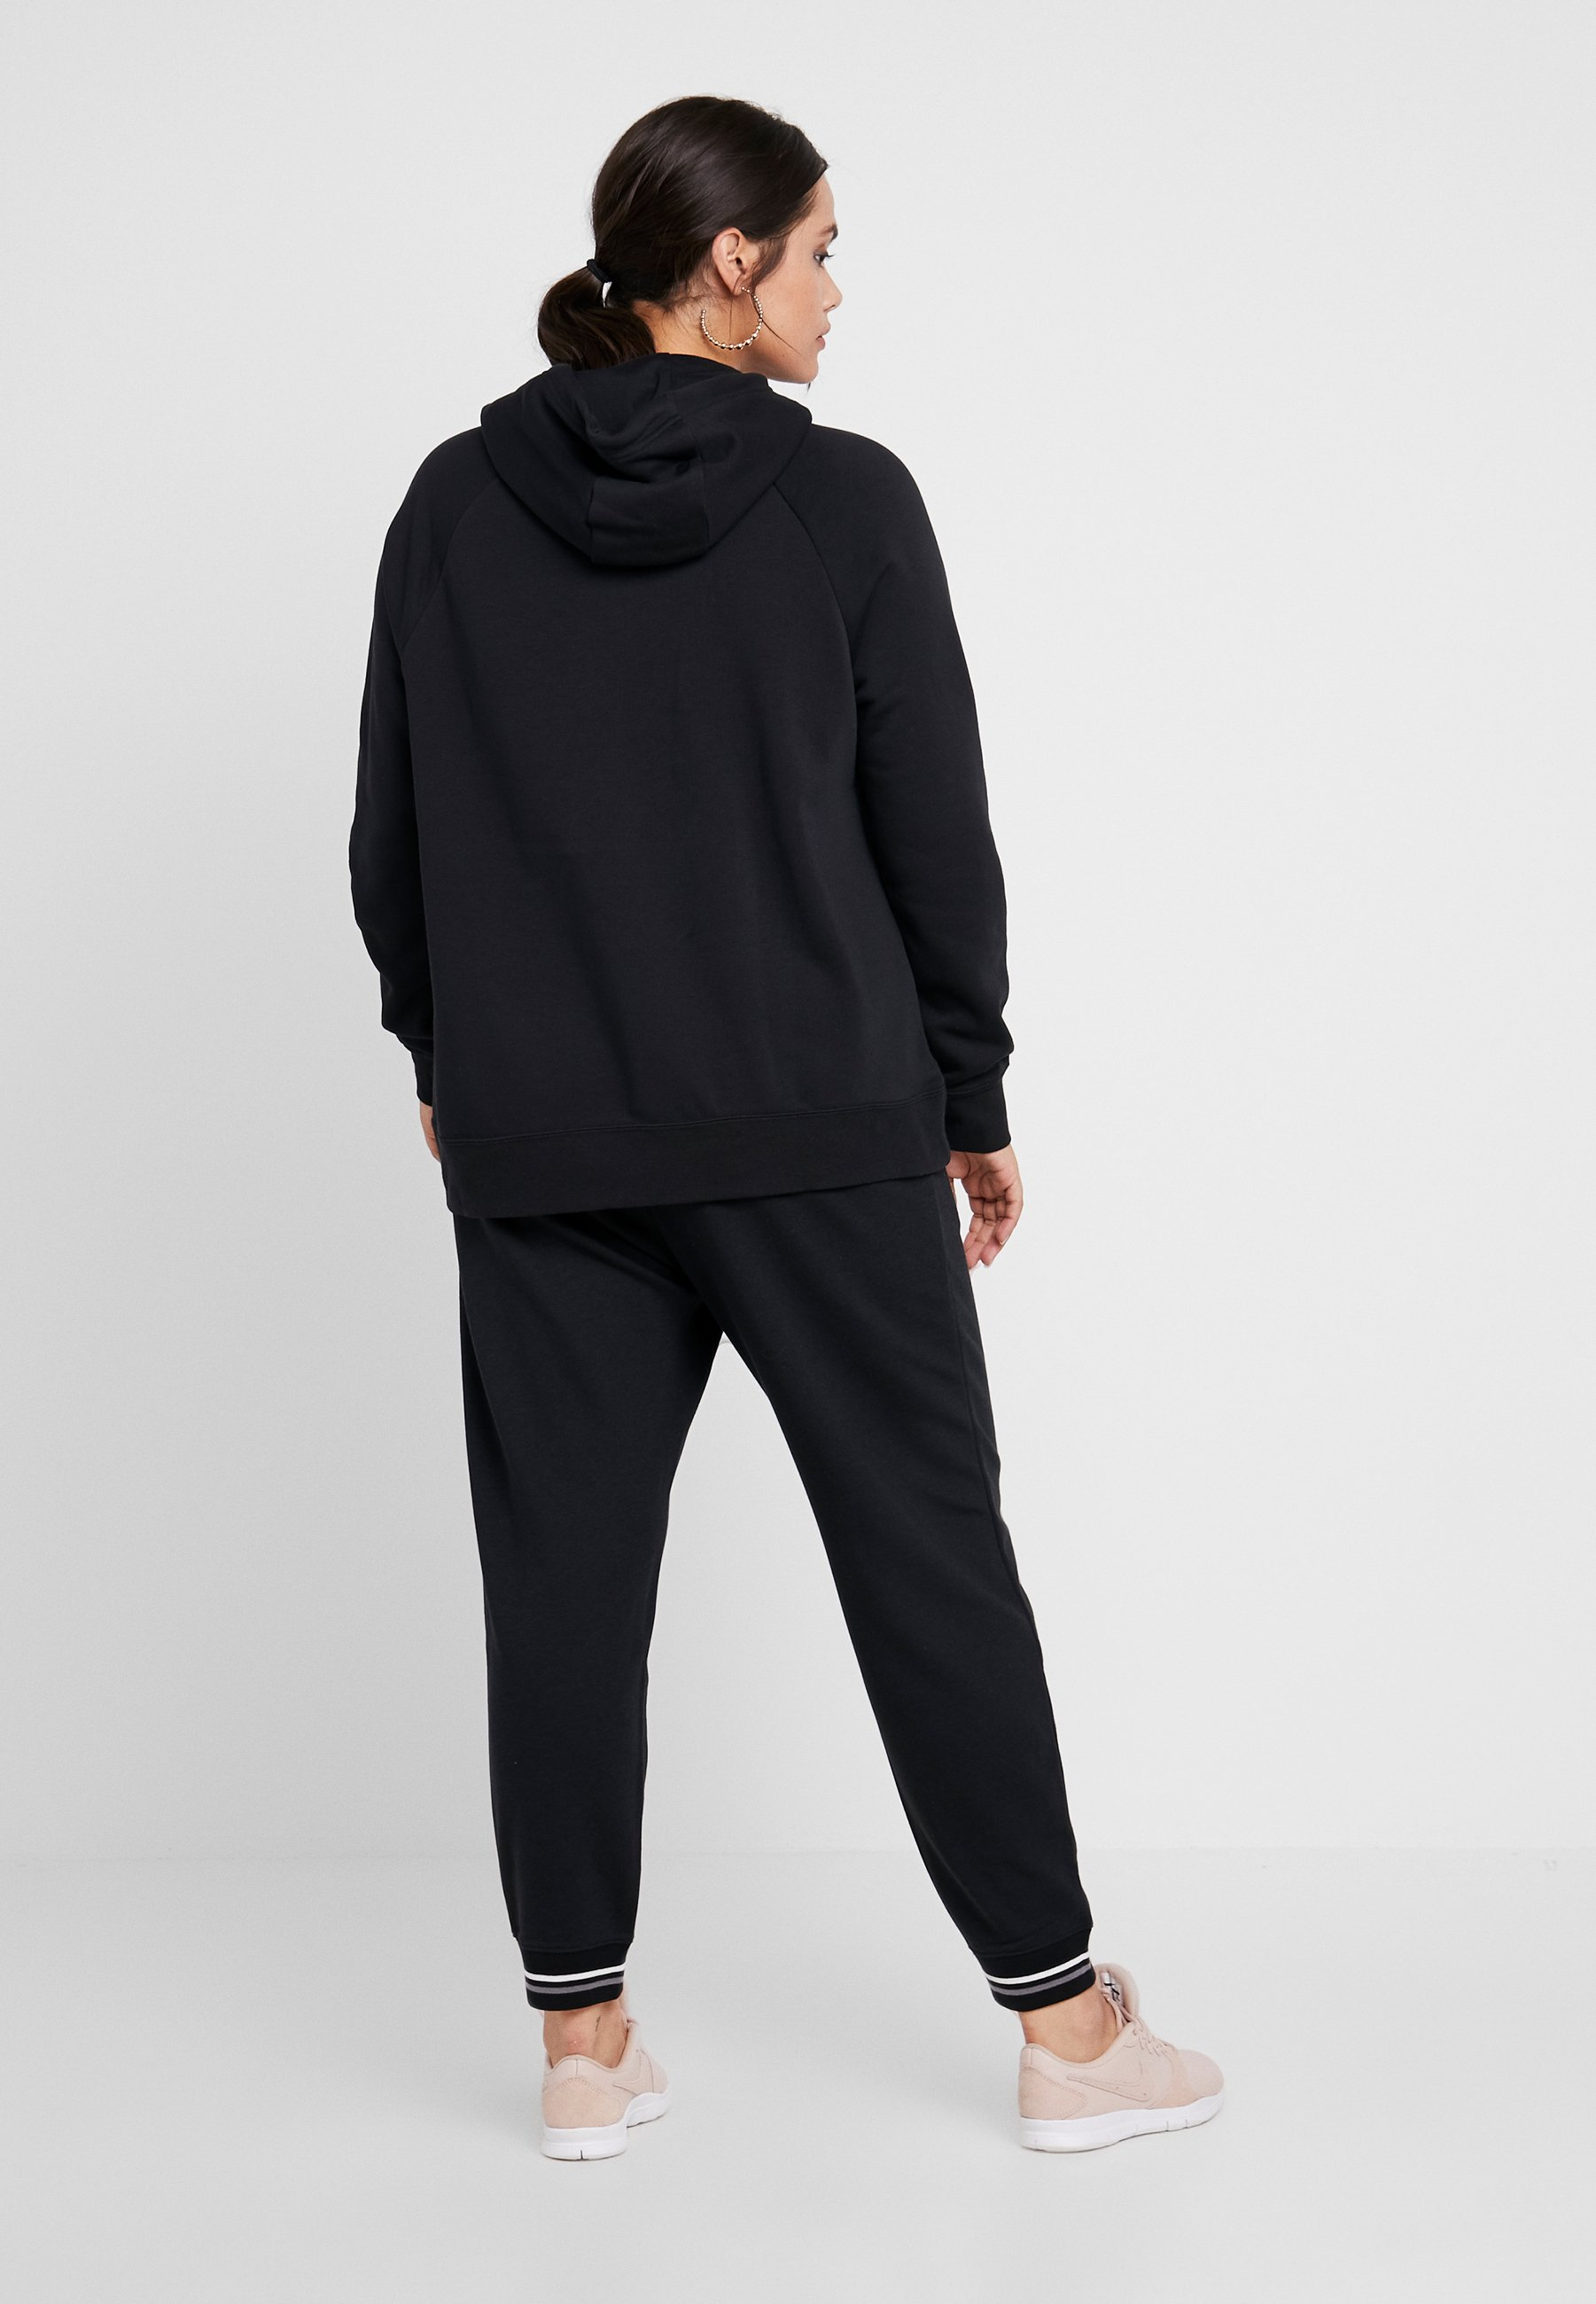 Nike Sportswear HOODY - Hoodie - black - Women's winter clothes RDv0y